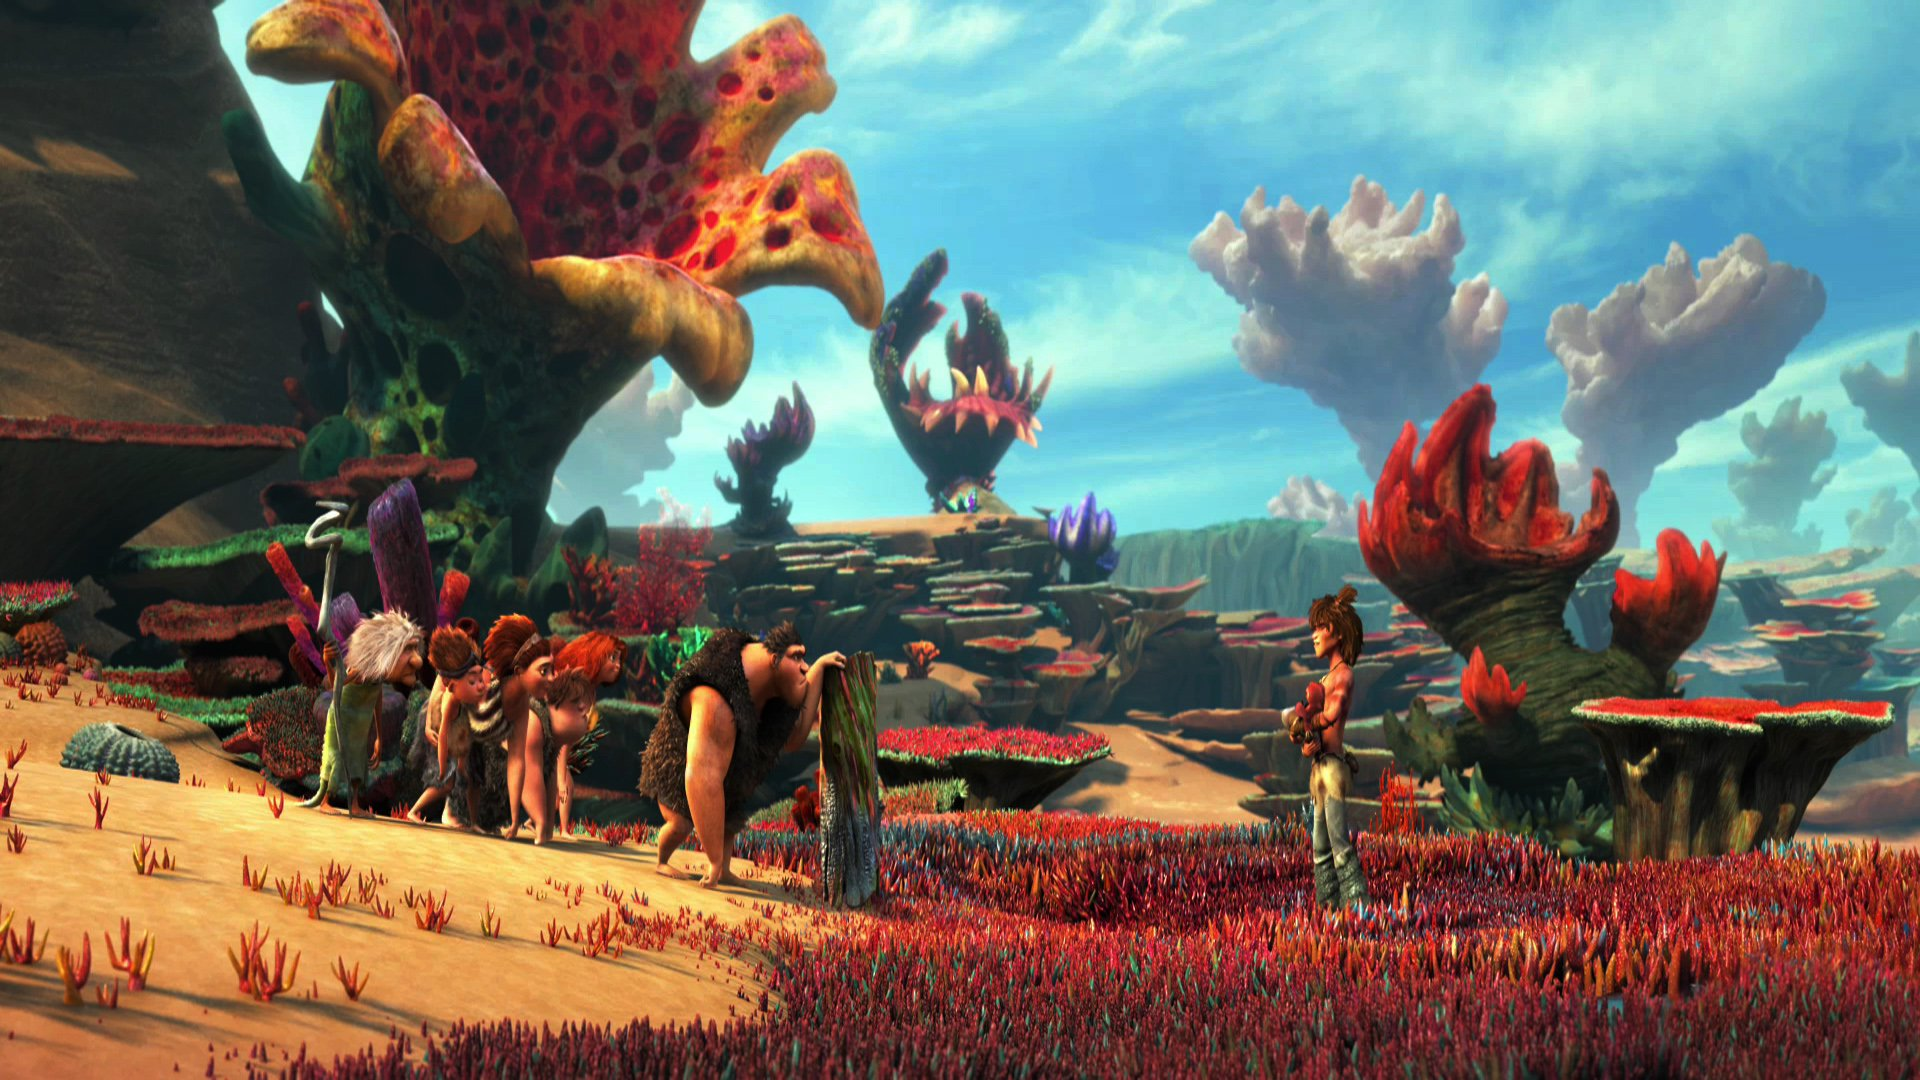 A still from 'The Croods' showing the main cast of characters and the colourful landscape (2013)